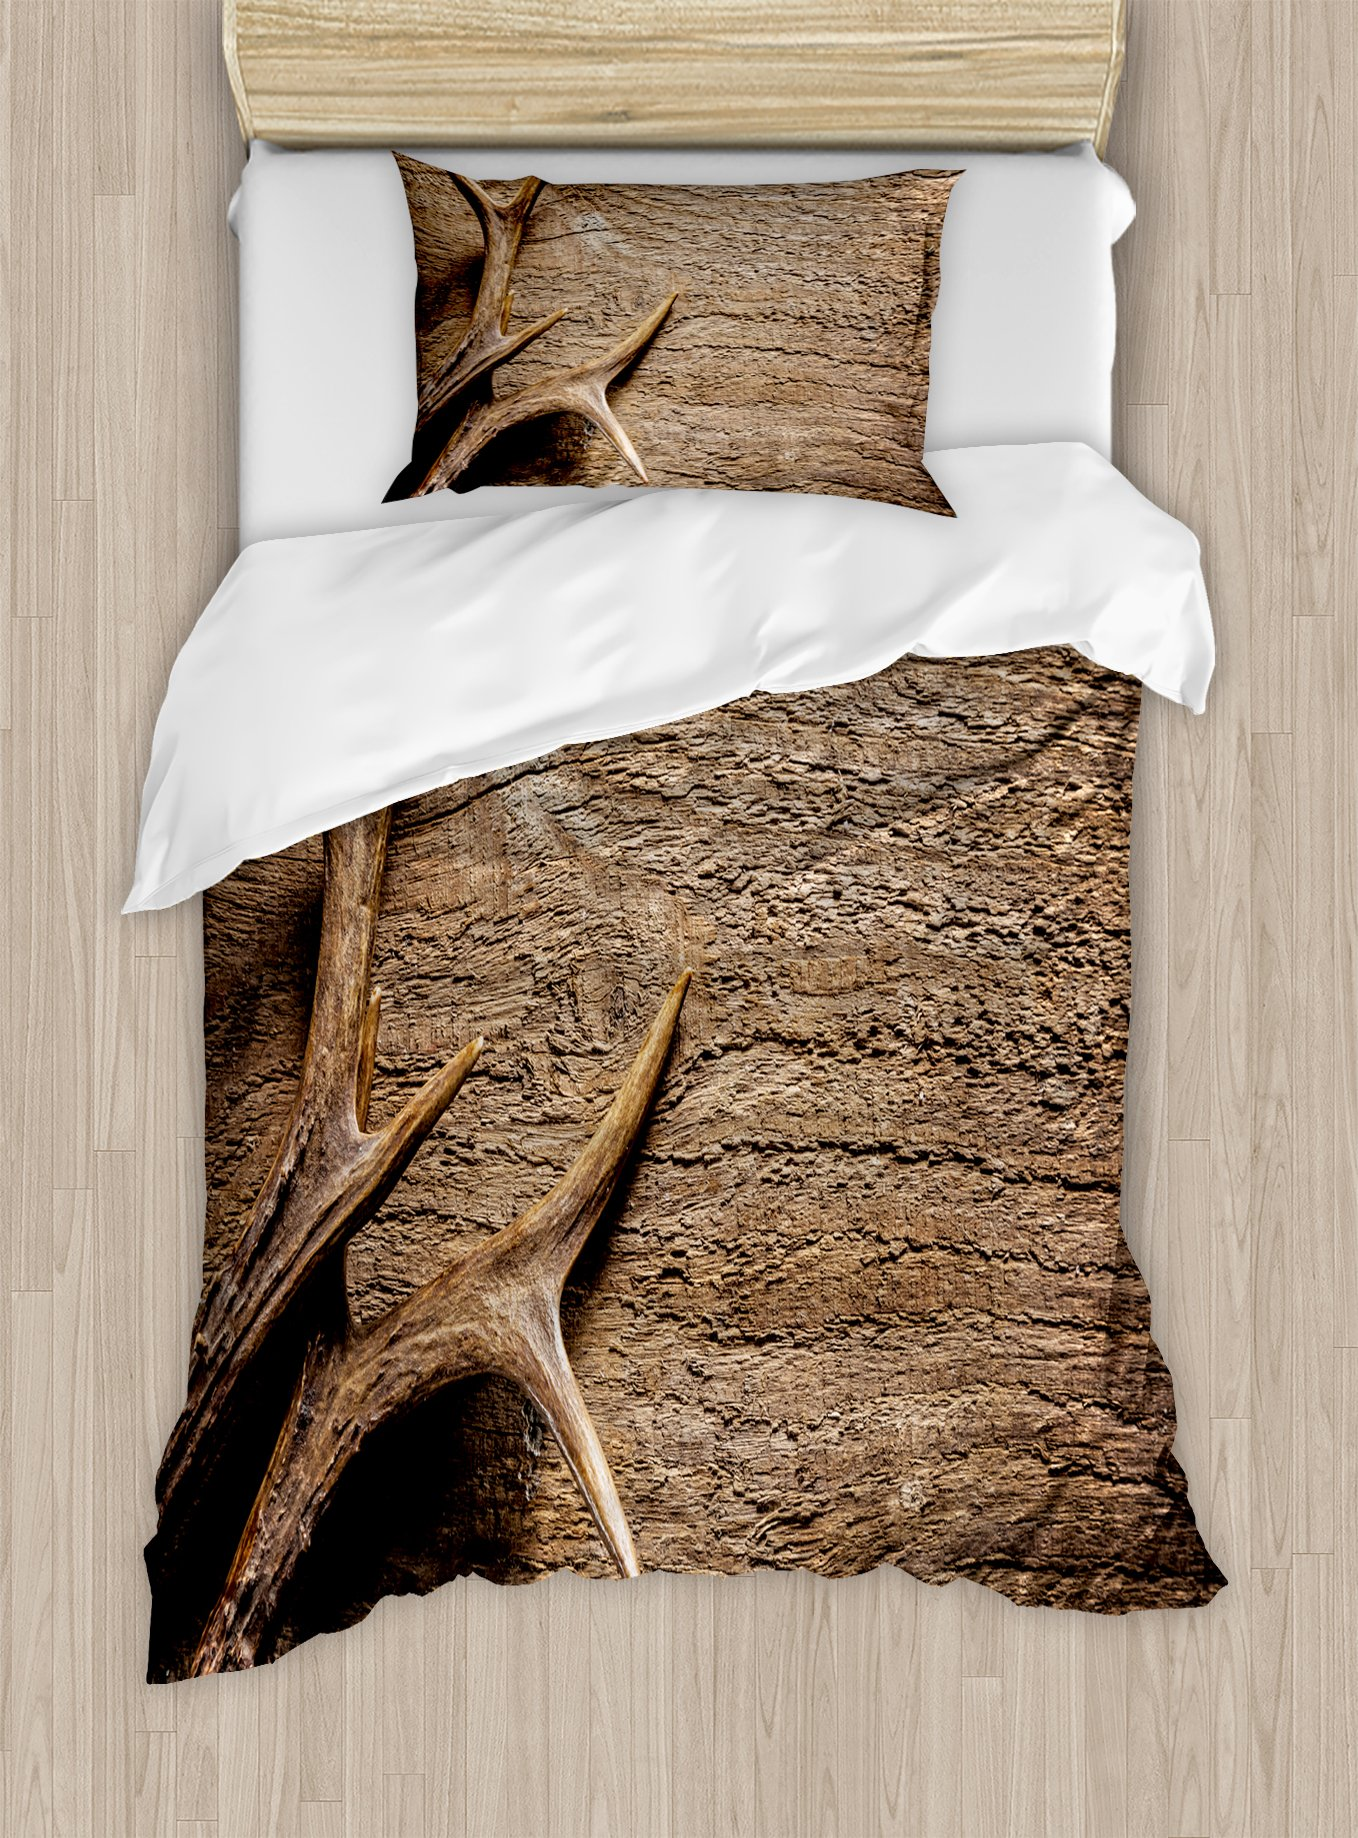 Ambesonne Antlers Duvet Cover Set Twin Size, Deer Antlers on Wood Table Rustic Texture Surface Hunting Season Fall Gathering Art, Decorative 2 Piece Bedding Set with 1 Pillow Sham, Umber